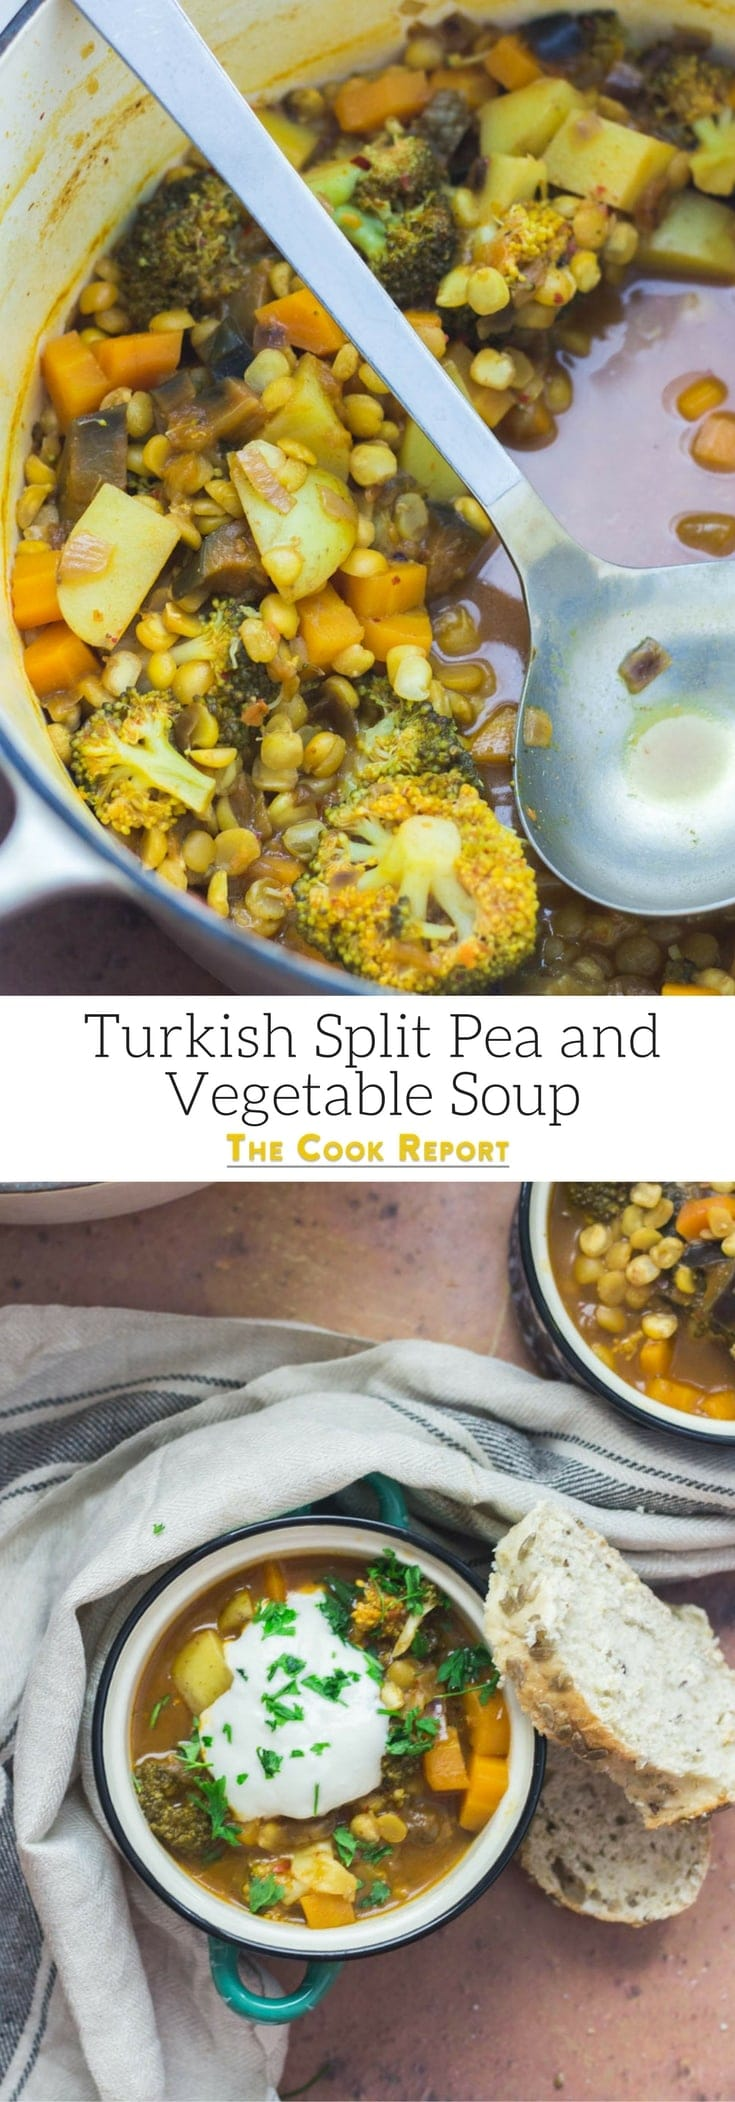 This Turkish split pea and vegetable soup is so warming and filled with healthy ingredients to make a tasty autumn meal perfect for the cooler weather.